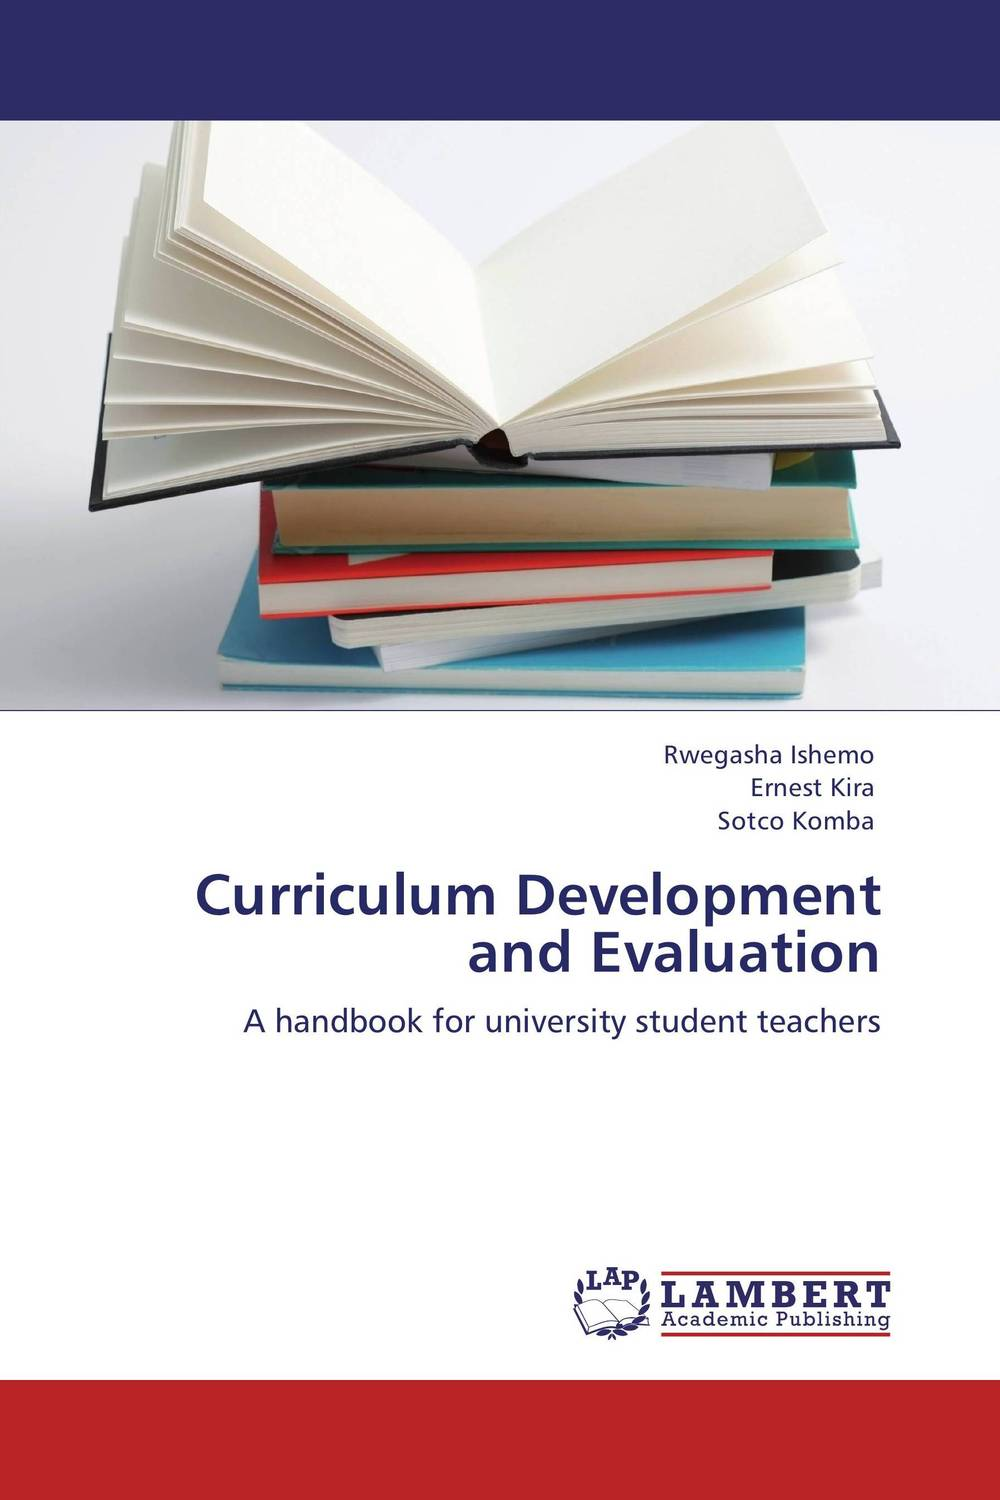 Curriculum Development and Evaluation anatoly peresetsky do secrets come out statistical evaluation of student cheating